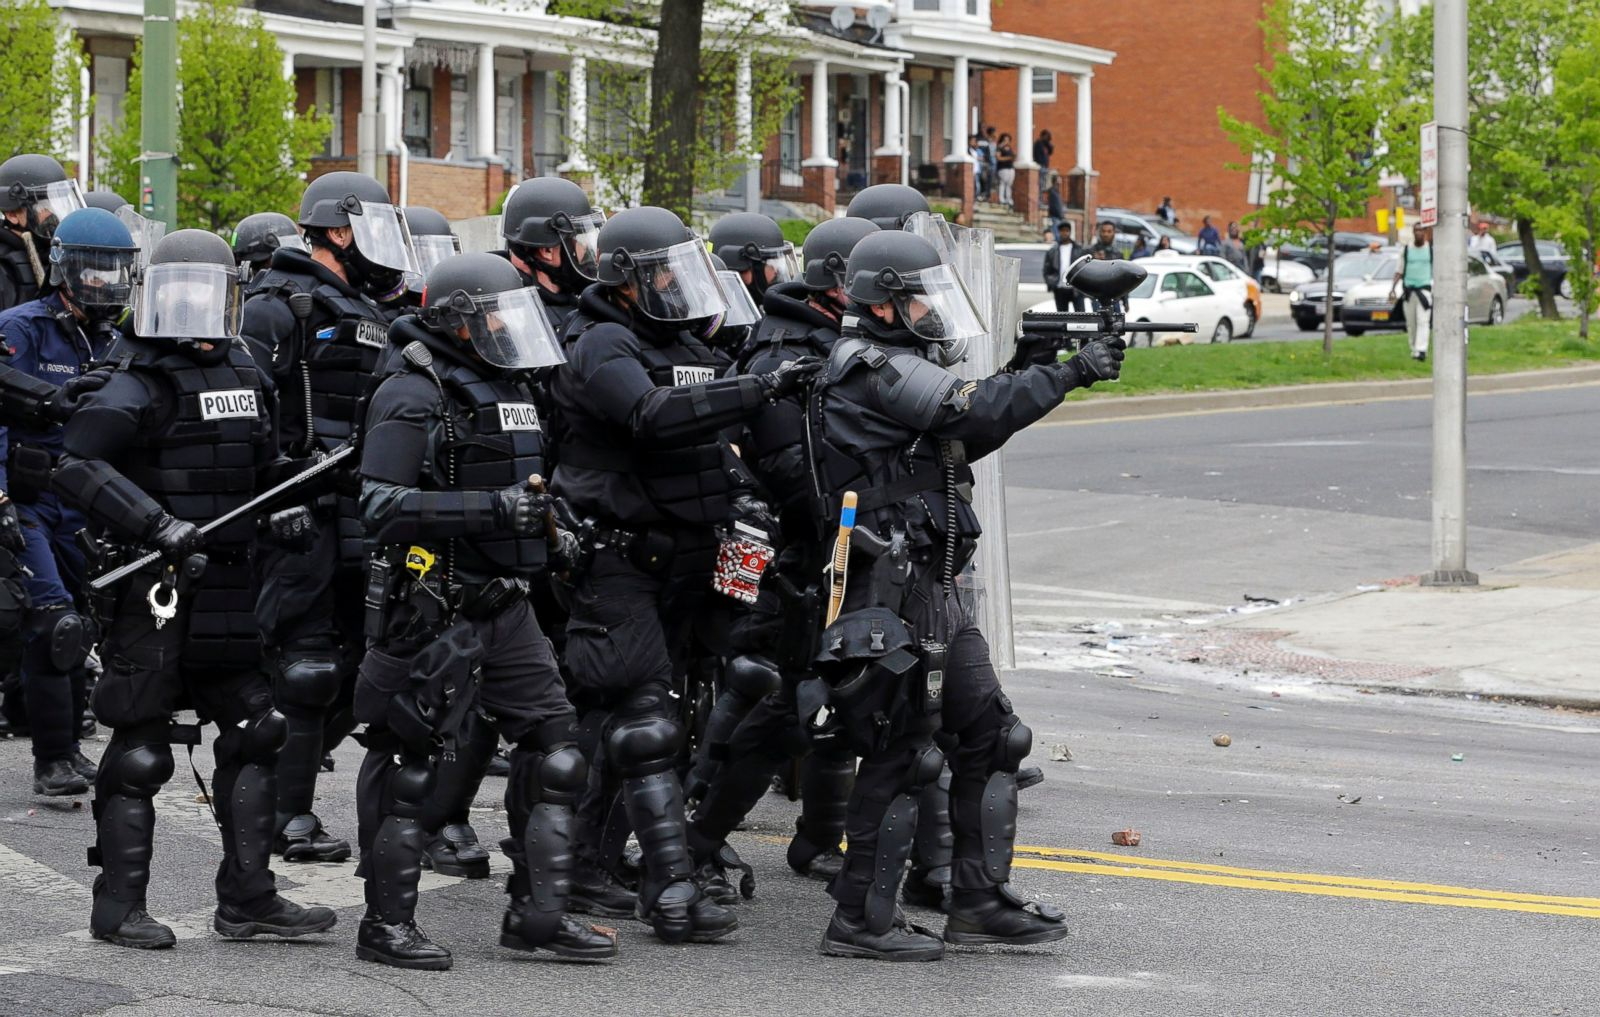 Baltimore police officers in riot gear push protestors back along - Baltimore Police Officers In Riot Gear Push Protestors Back Along 30